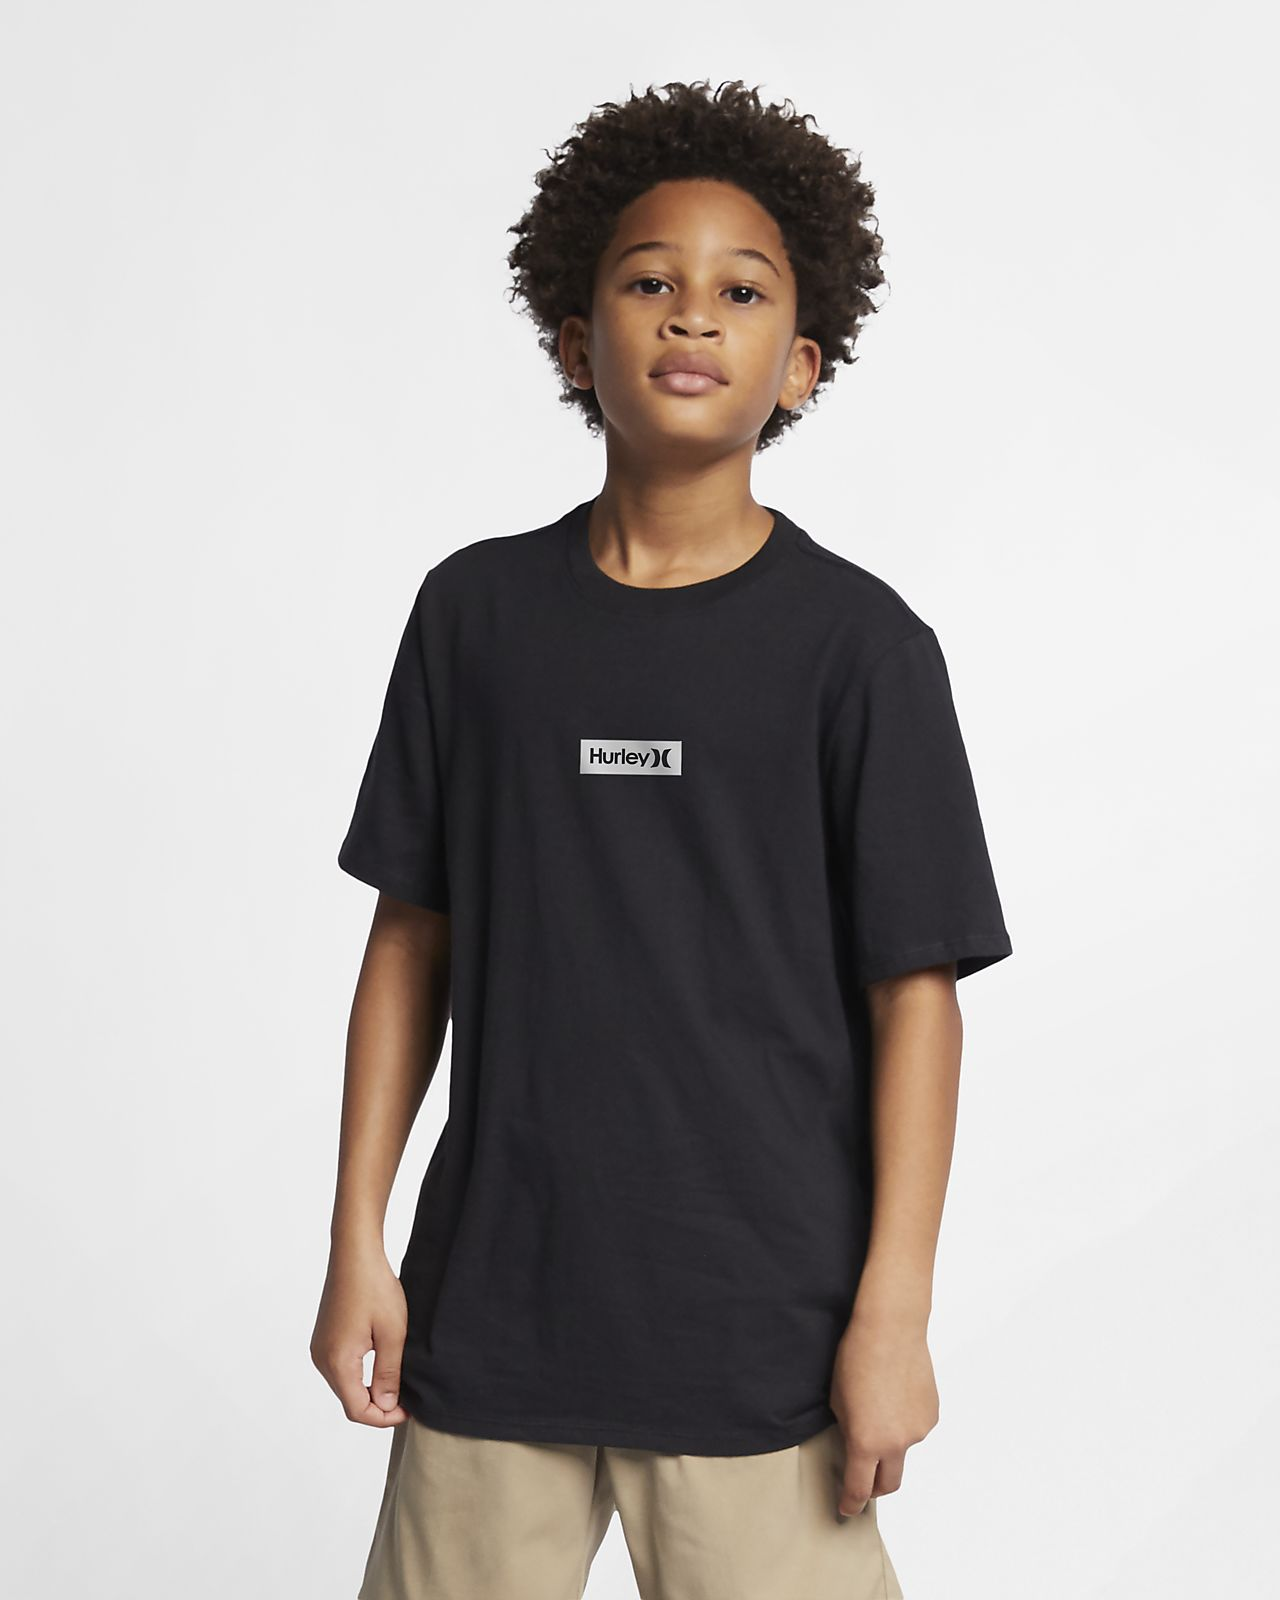 Hurley Premium One And Only Small Box Jungen-T-Shirt